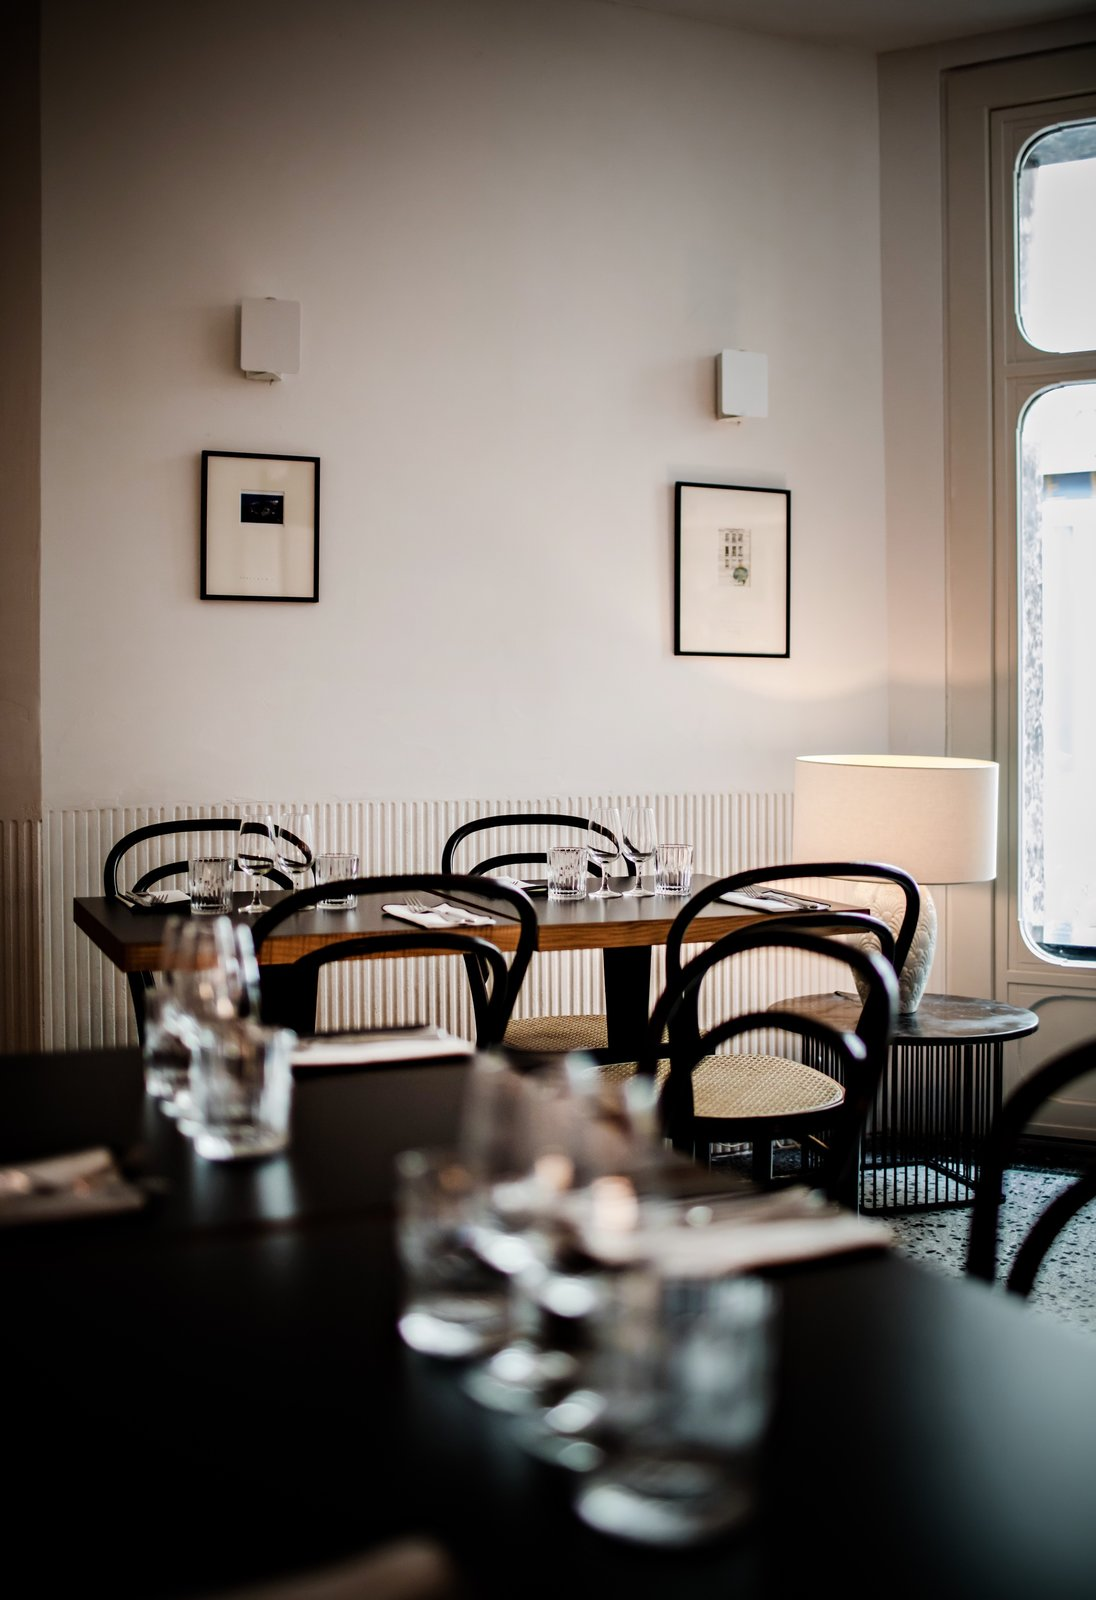 Le Pigalle's menu is served all day until late night and is available on both the ground floor or from room service. The menu focuses on simplicity and accessibility.  Photo 8 of 8 in Collaboration Reigns  Over This Parisian Neighborhood Hotel